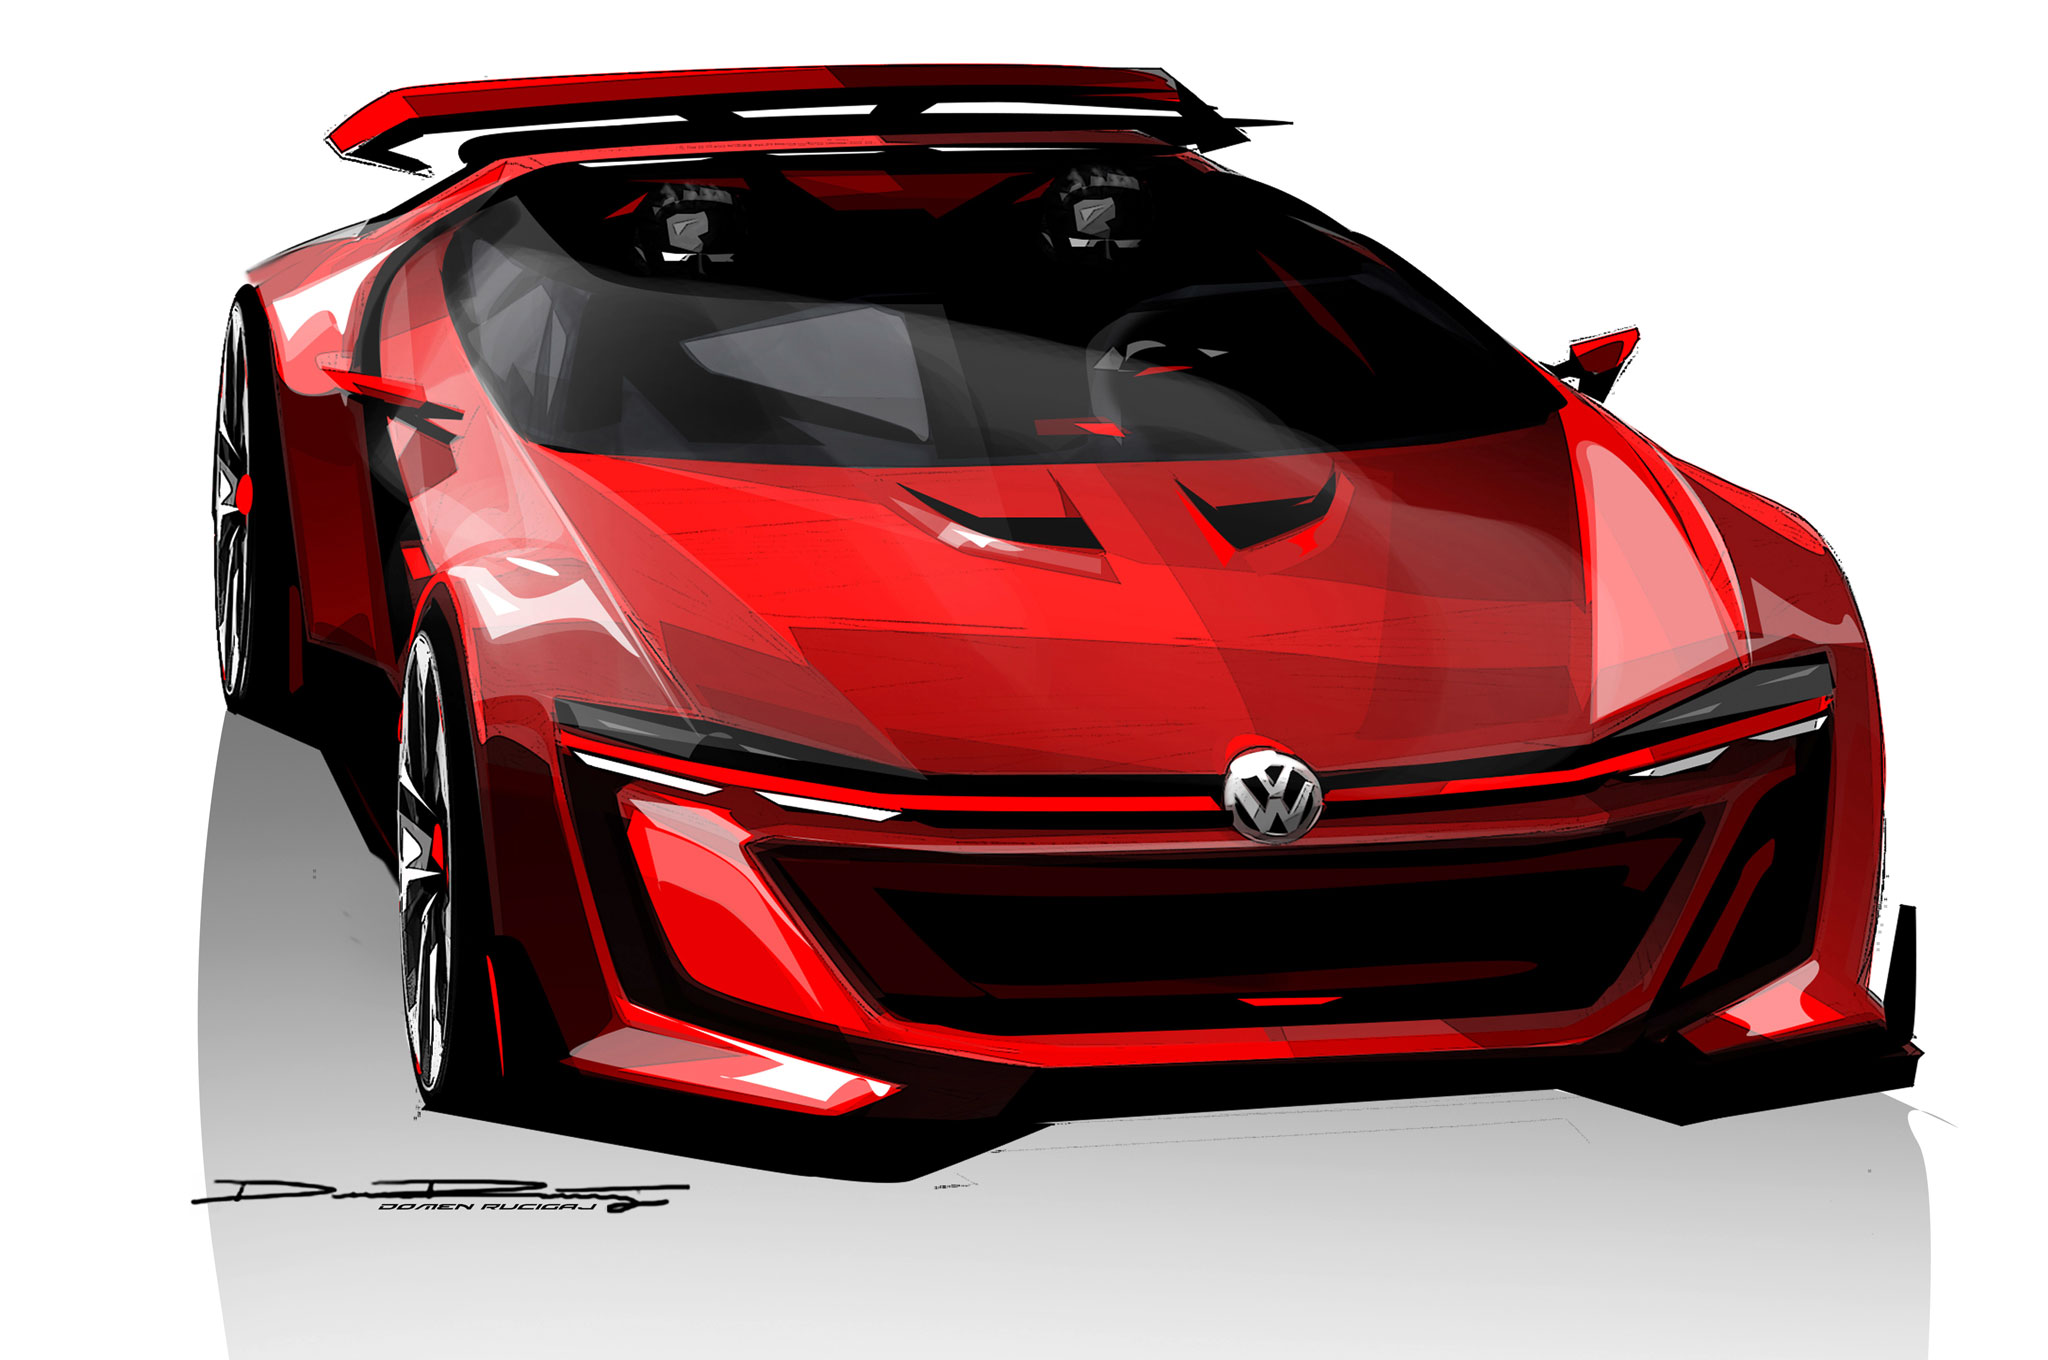 Volkswagen GTI Roadster Vision Gran Turismo Sketch Front View1